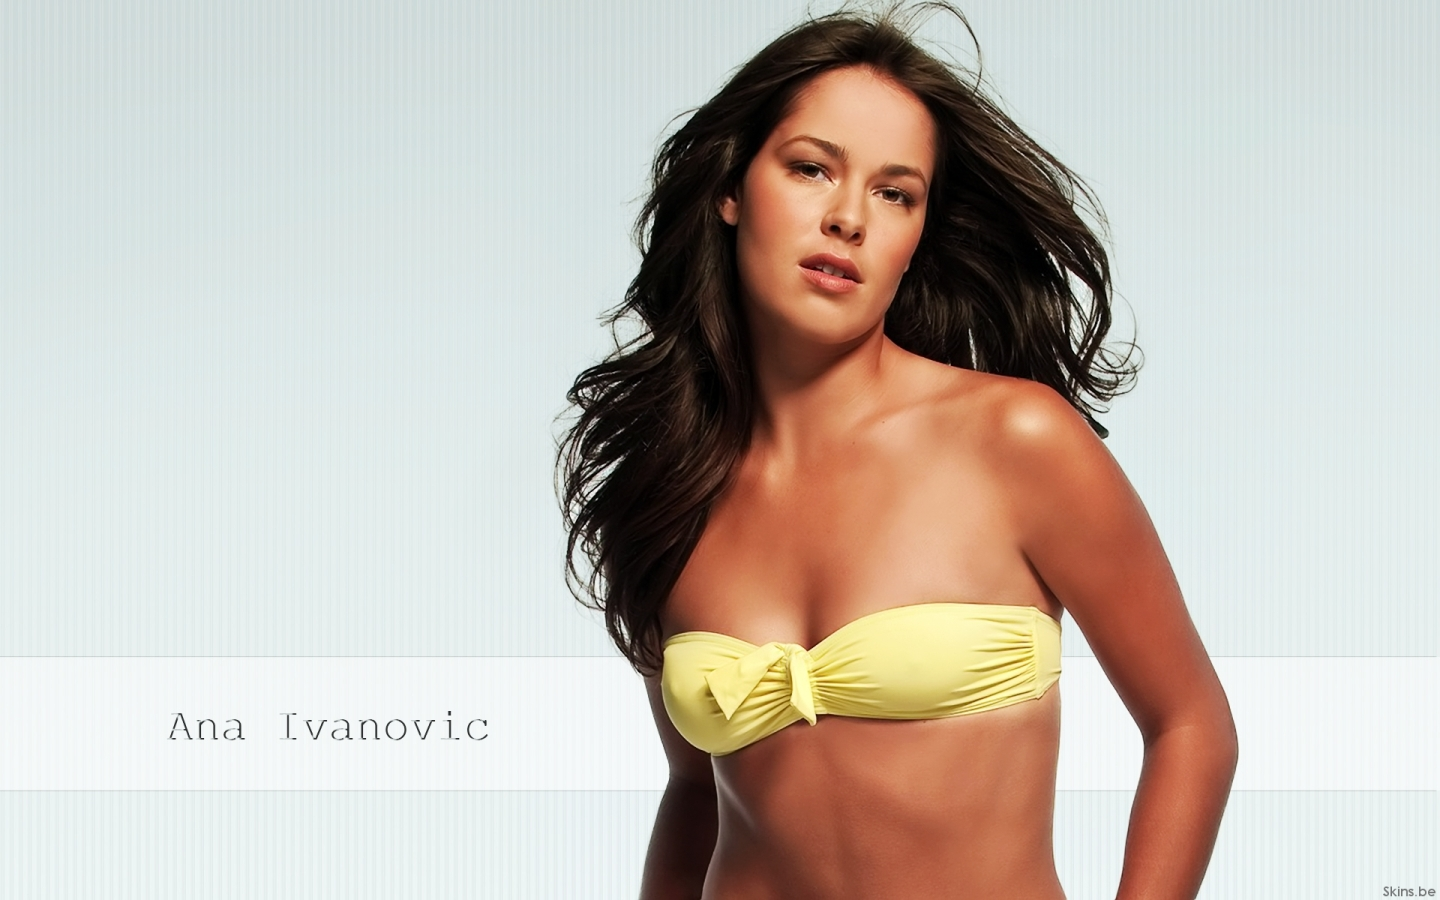 Ana Ivanovic wallpaper (#37969)